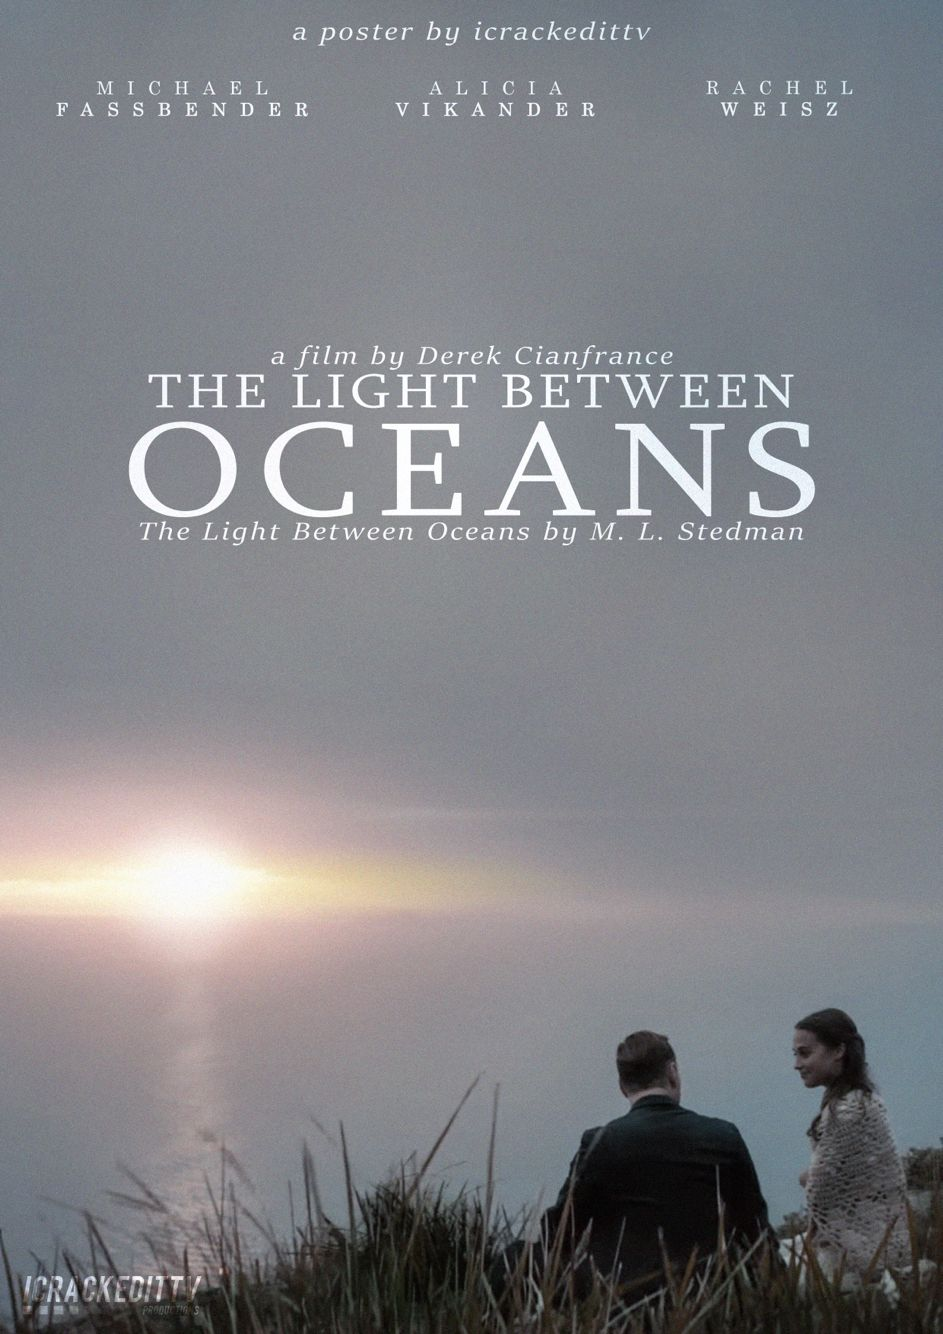 The Light Between The Oceans Poster..listening To The Audiobook Now. I  Canu0027t Wait To See The Movie.